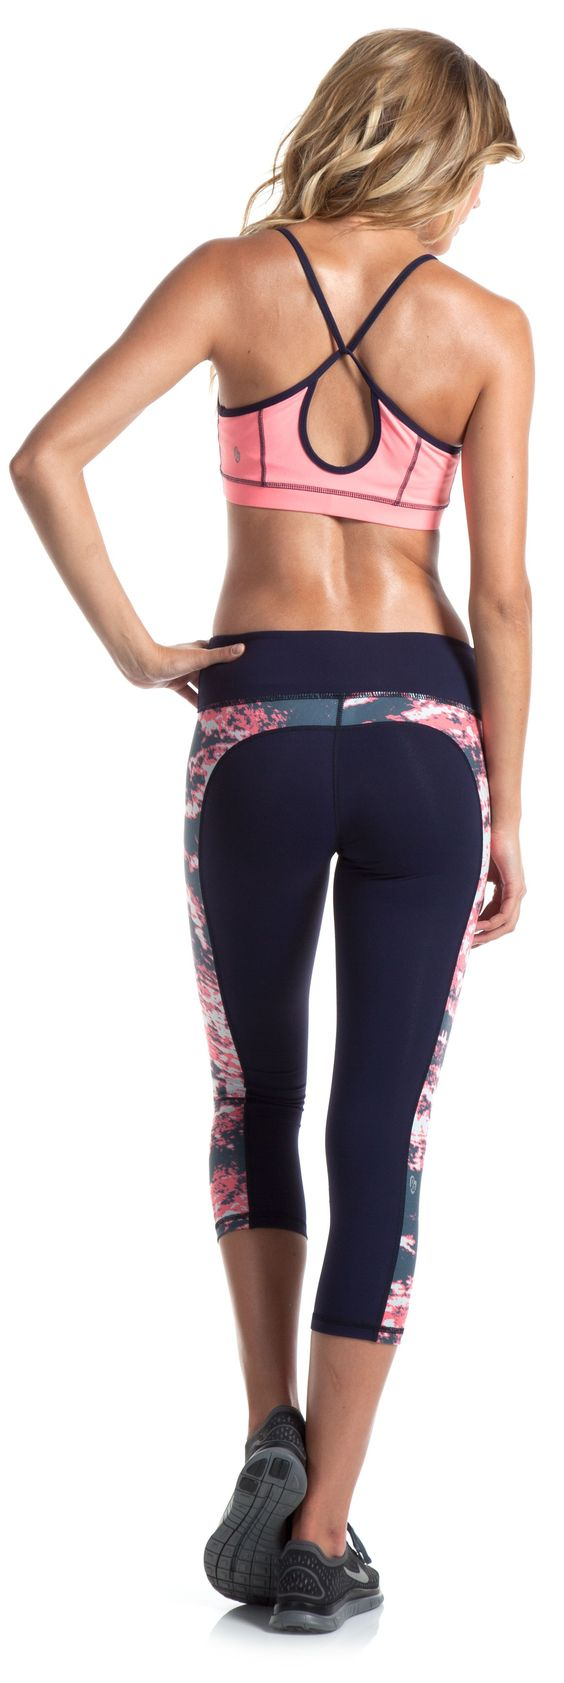 Ellie workout wear: Inspiration for the design of my activewear range. Take note of the design of the contour lines and the colour combinations used in this design.